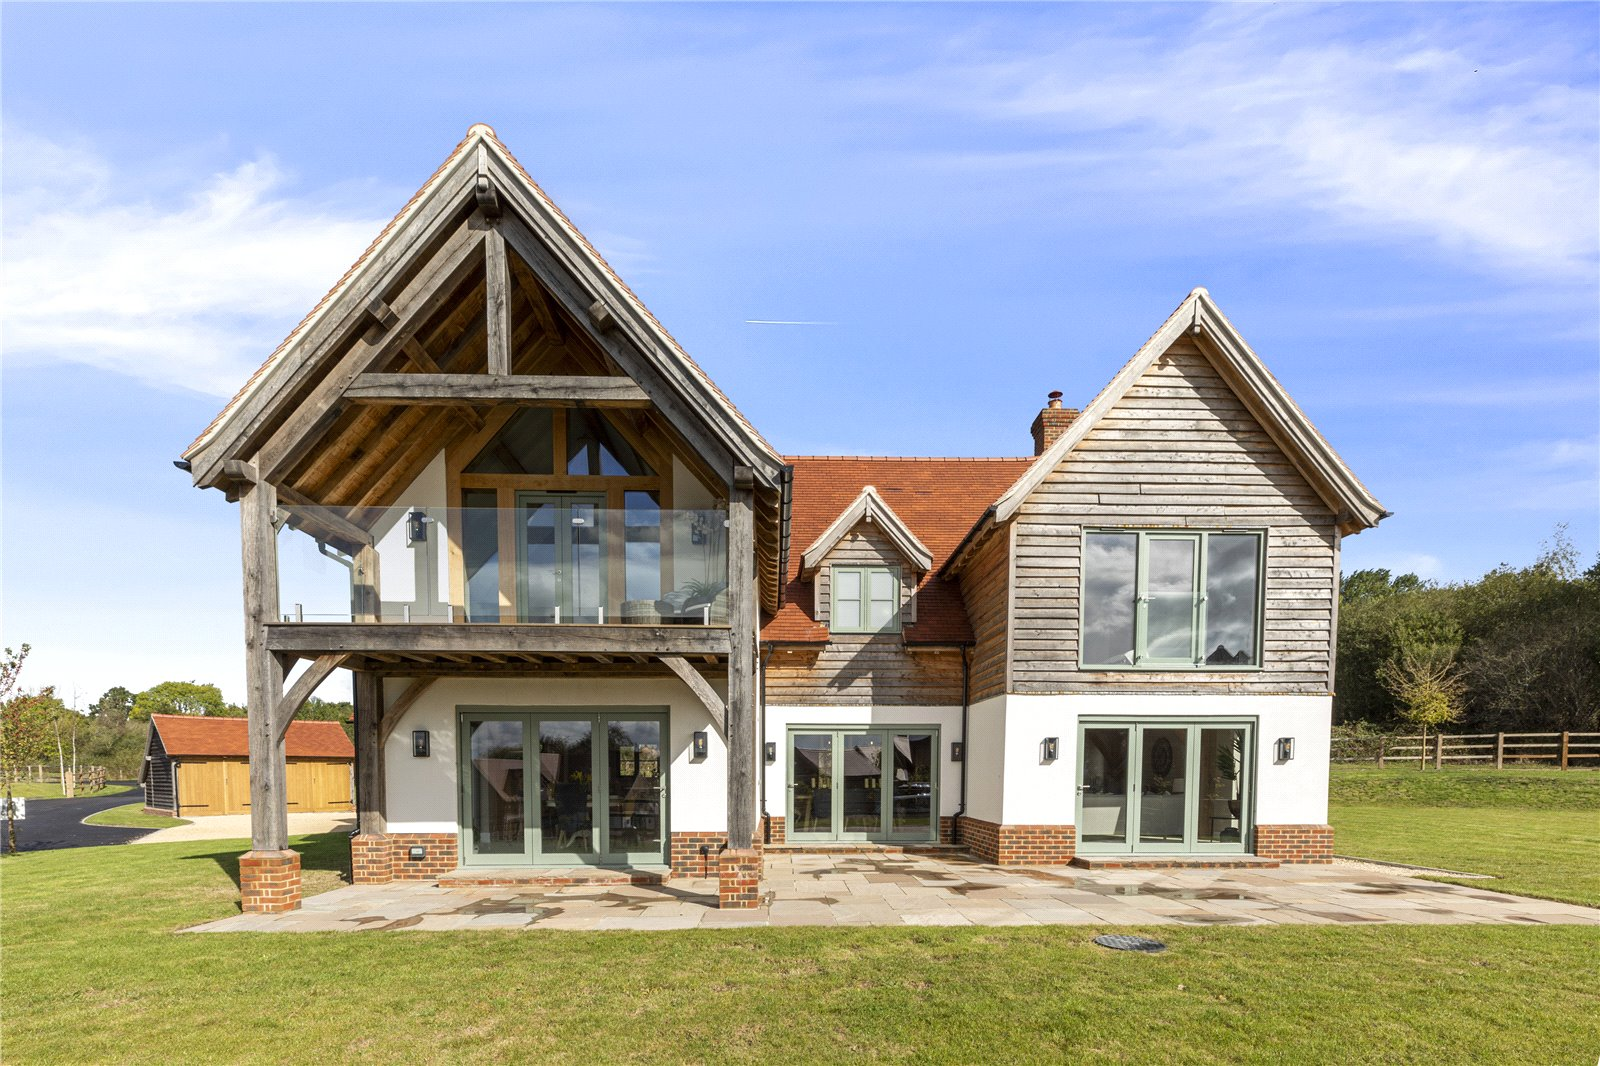 new build contemporary timber cladded nordic lodge inspired house